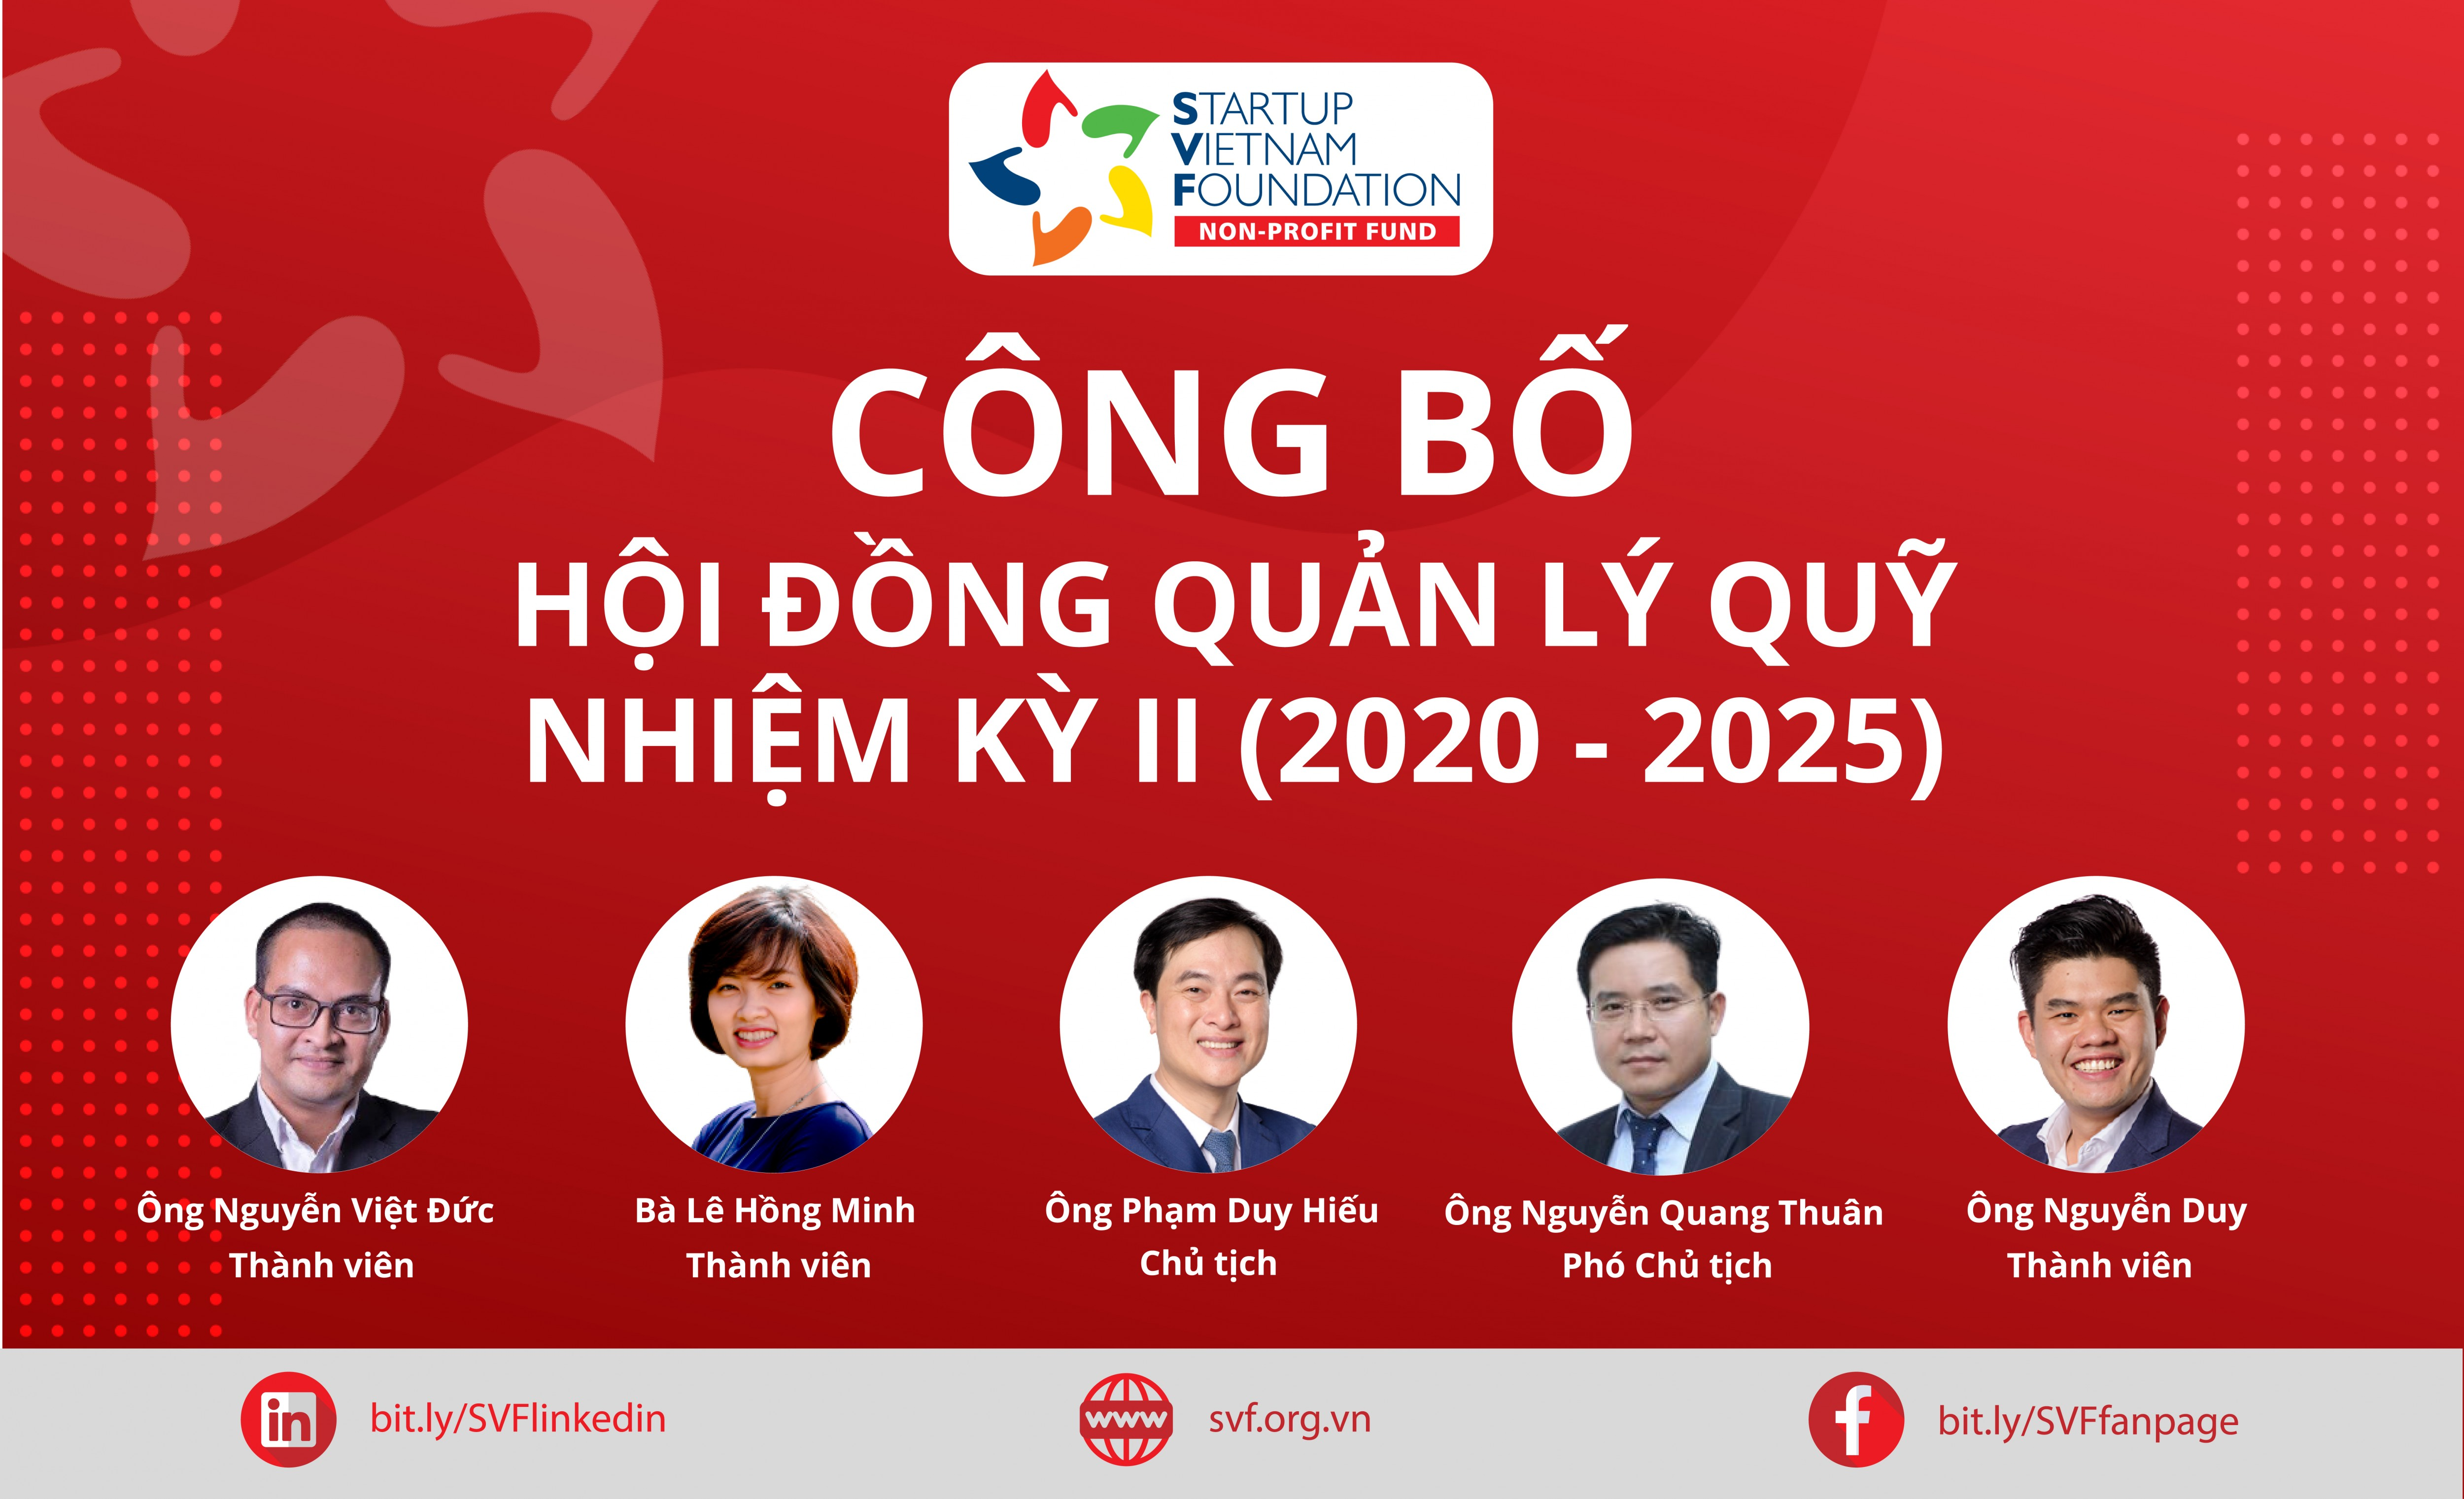 MANAGEMENT BOARD TERM II (2020 - 2025) ANNOUNCEMENT AND  APPOINTMENT OF CHIEF OPERATING OFFICER OF STARTUP VIETNAM FOUNDATION